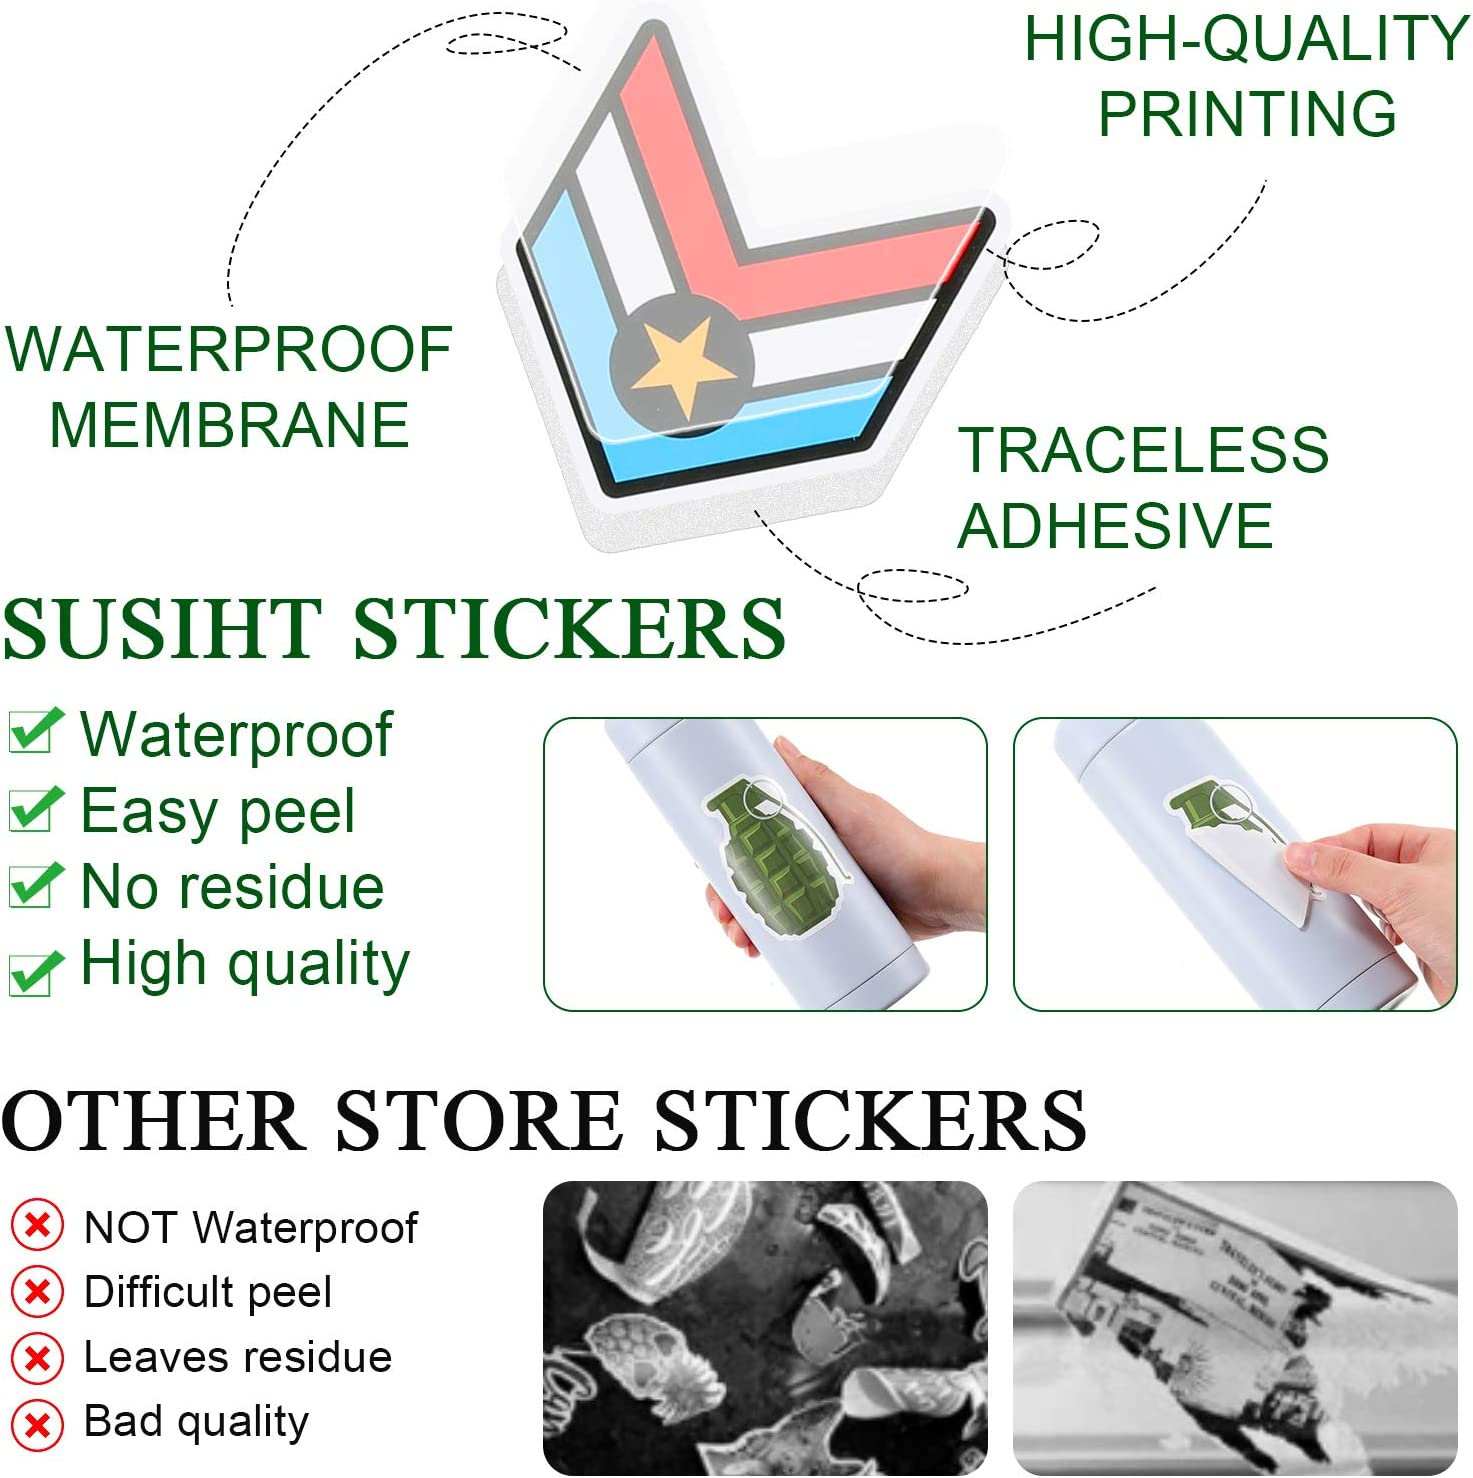 100 Pieces Military Stickers for Army Waterproof Patriotic Army Sticker Adhesive Helmet Stickers Tactical Stickers Laptop Vinyl Decals Pack for Water Bottle Car Motorcycle Hard Hat